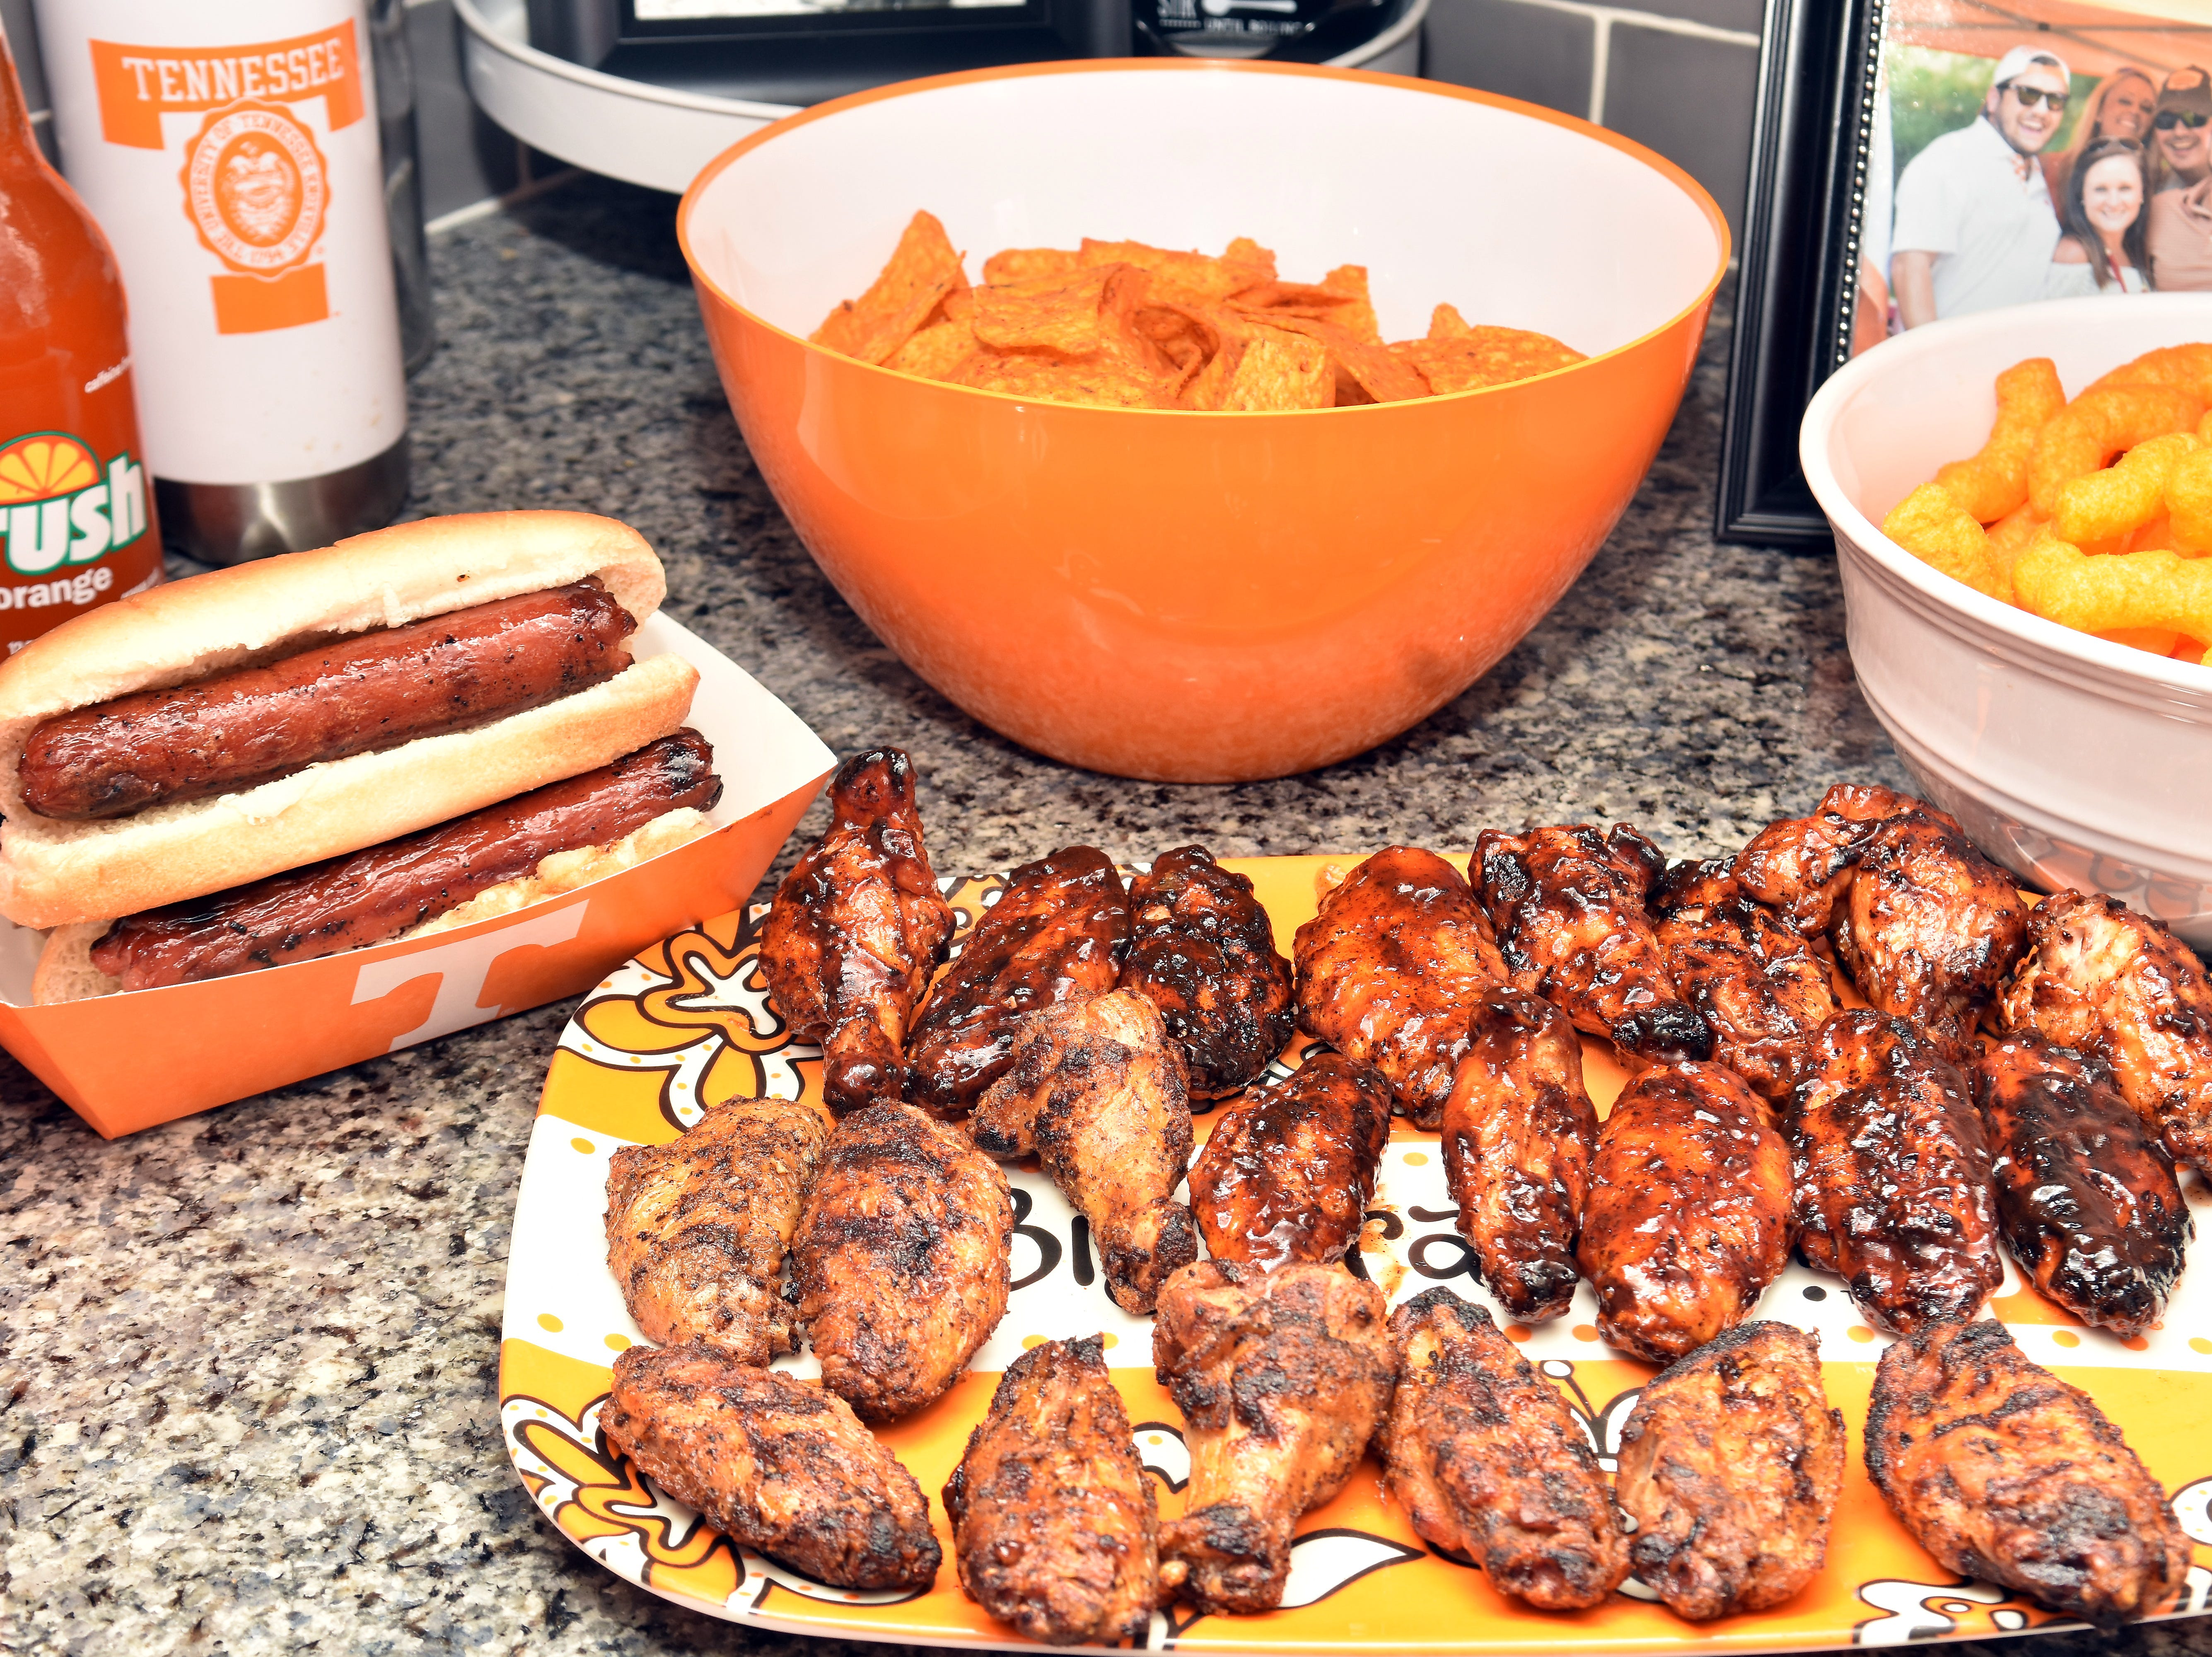 Grab and go foods such as wings or a hot dog bar are good choices for a basketball watching party.